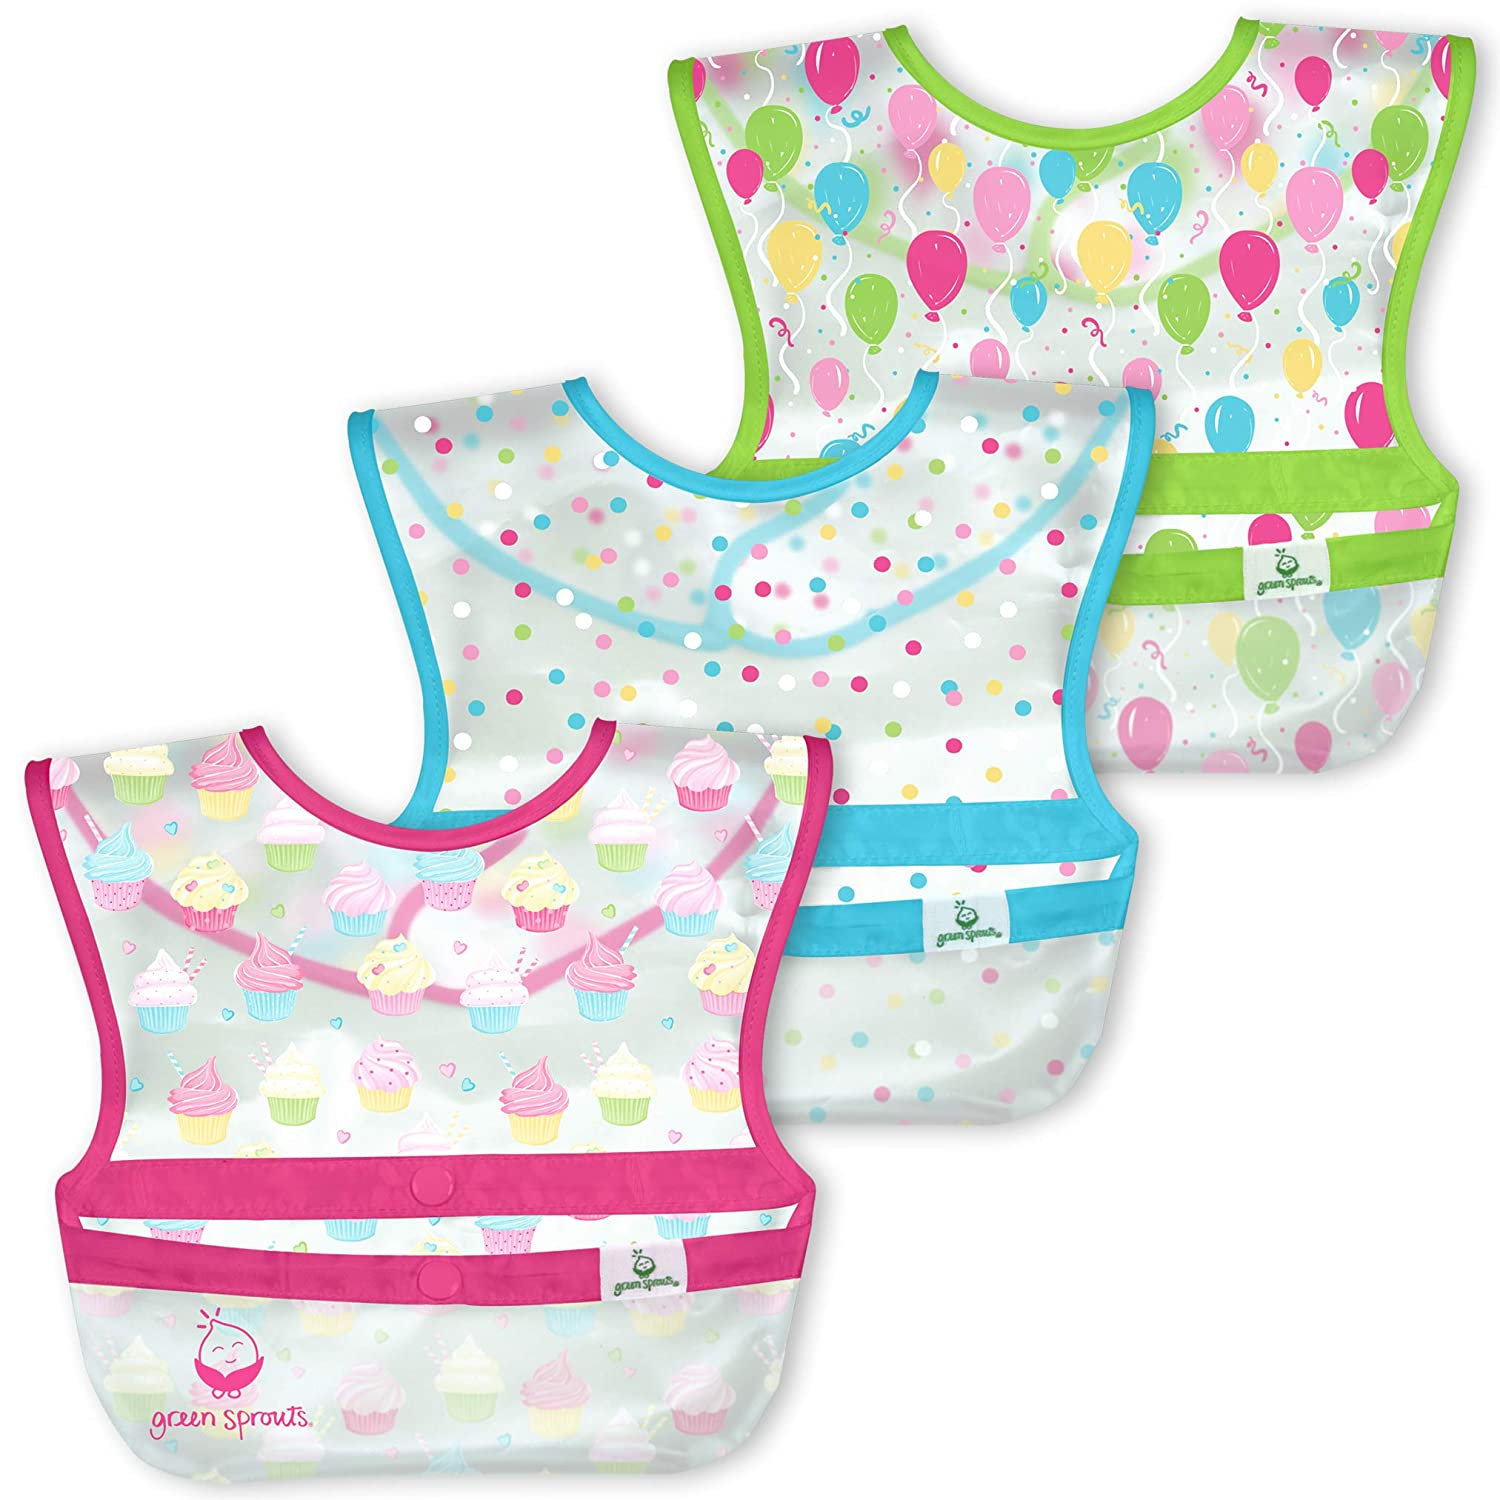 green sprouts Snap & Go Wipe-Off Bibs (3 Pk)   Waterproof Protection for Messy Eaters   Neatly Rolls Up for Mess & Utensil Storage, Flipped Pocket Stays Extended to Catch Spills, Easy Clean, Pink